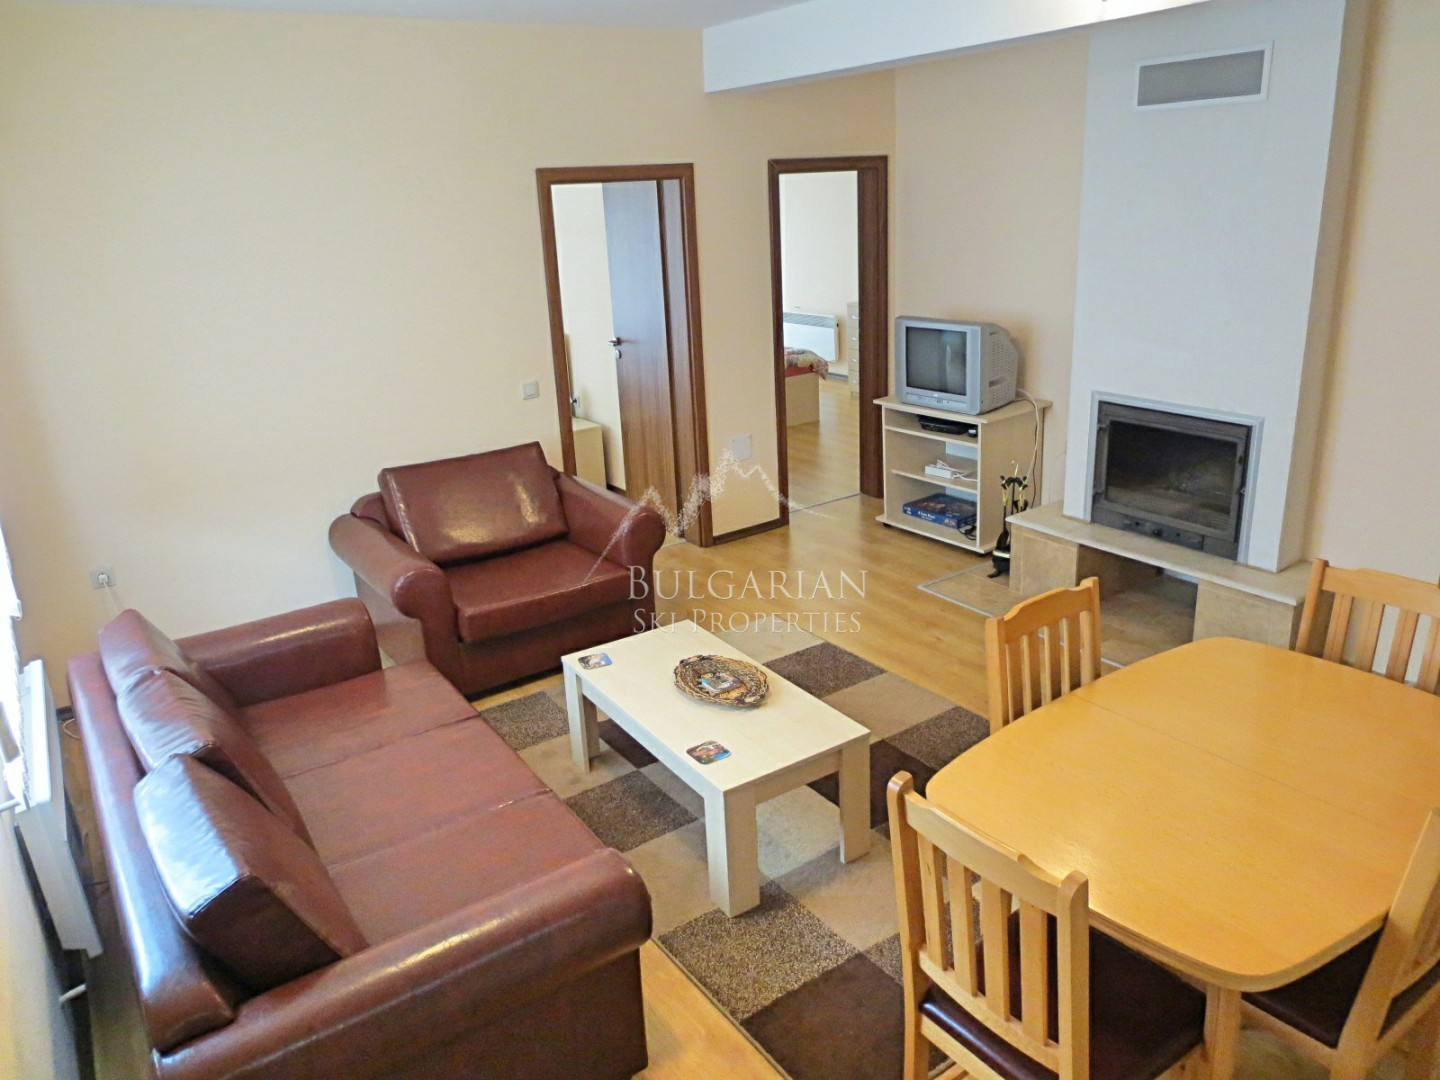 Spacious two-bedroom apartment for sale in Bansko